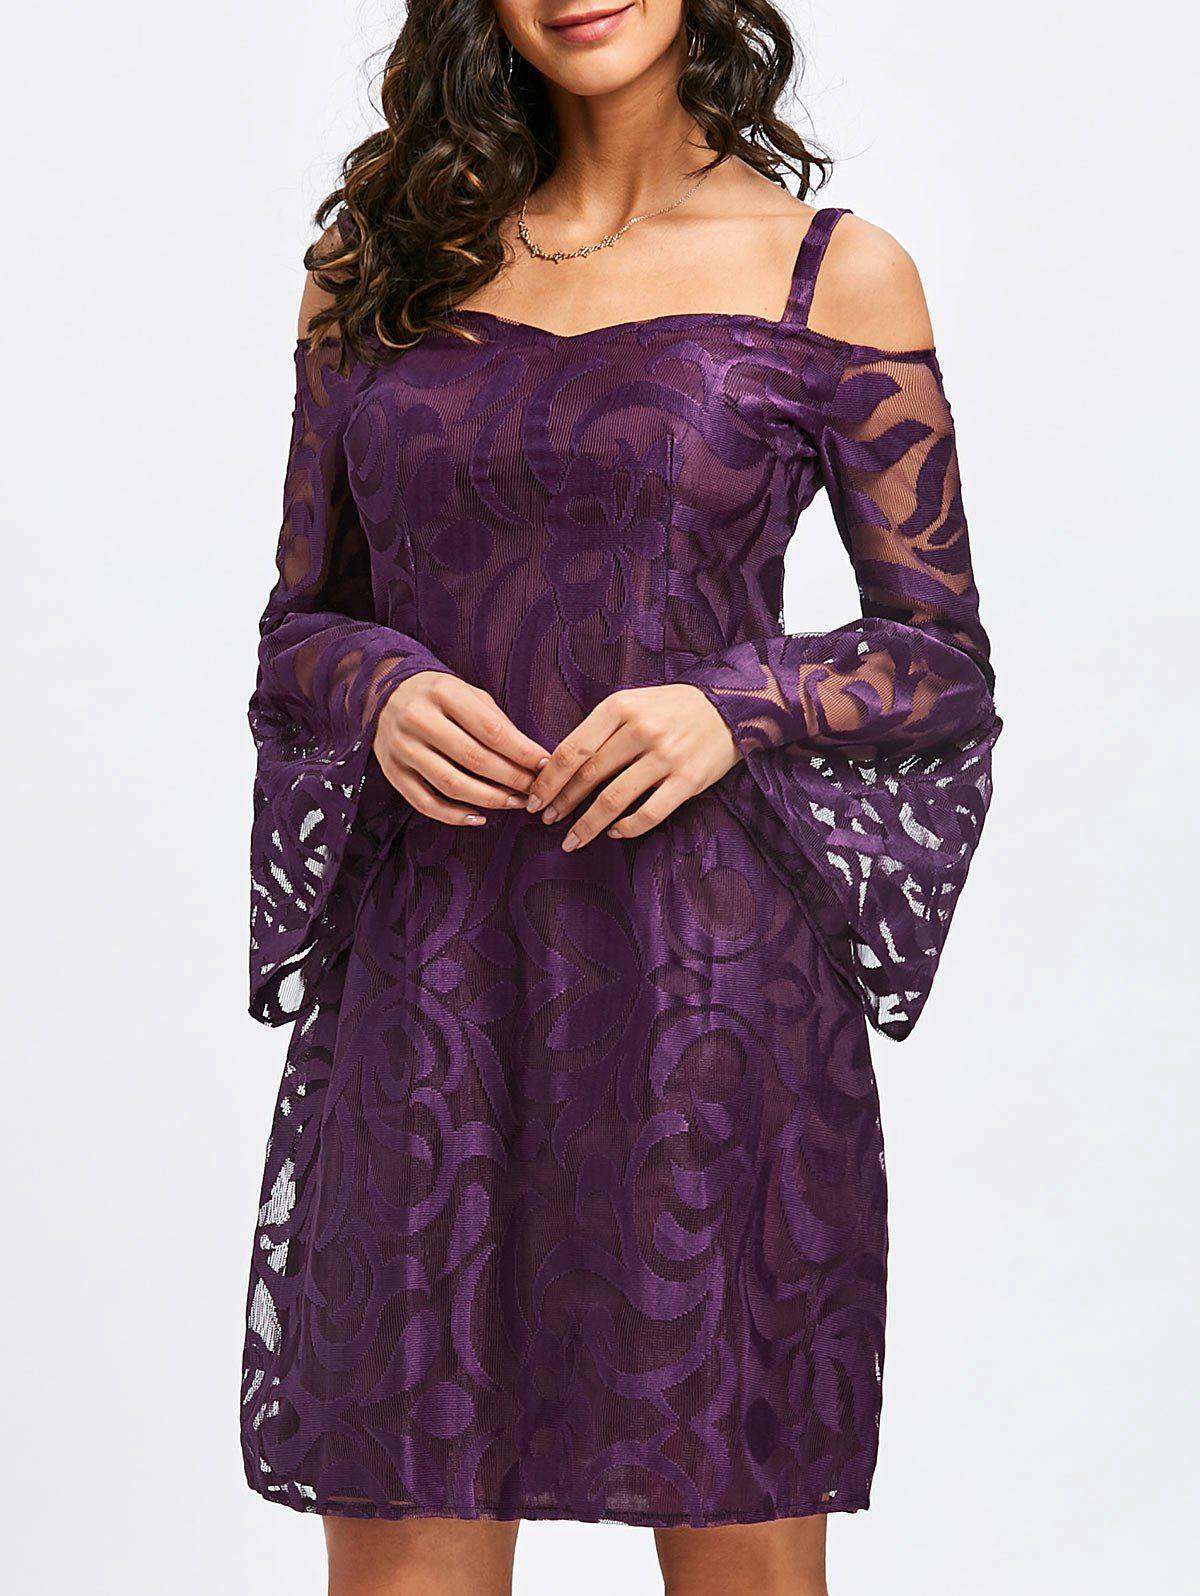 Bell Sleeve Cold Shoulder Lace Dress - PURPLE M